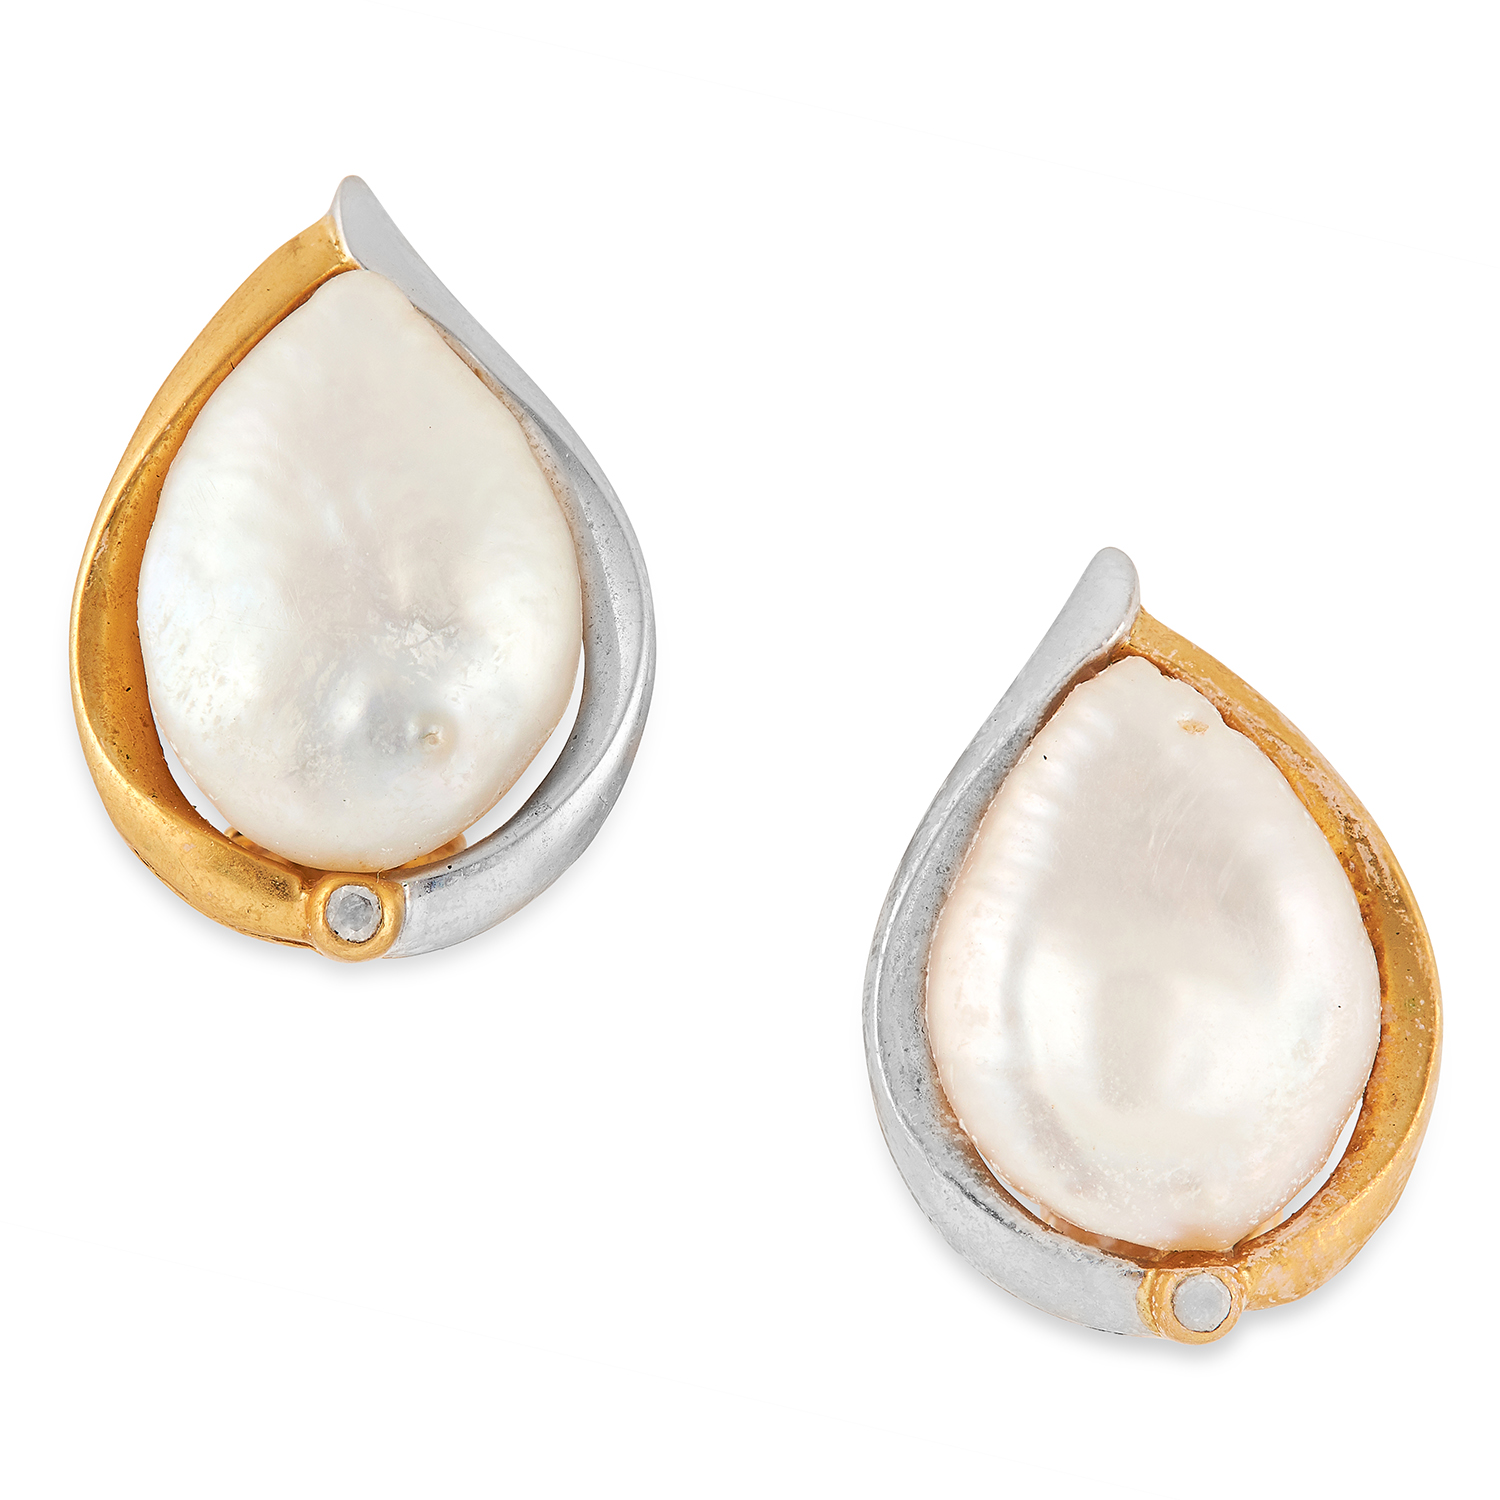 PEARL AND DIAMOND EARRINGS each set with a pear shaped pearl above a round cut diamond, 2.1cm, 11.